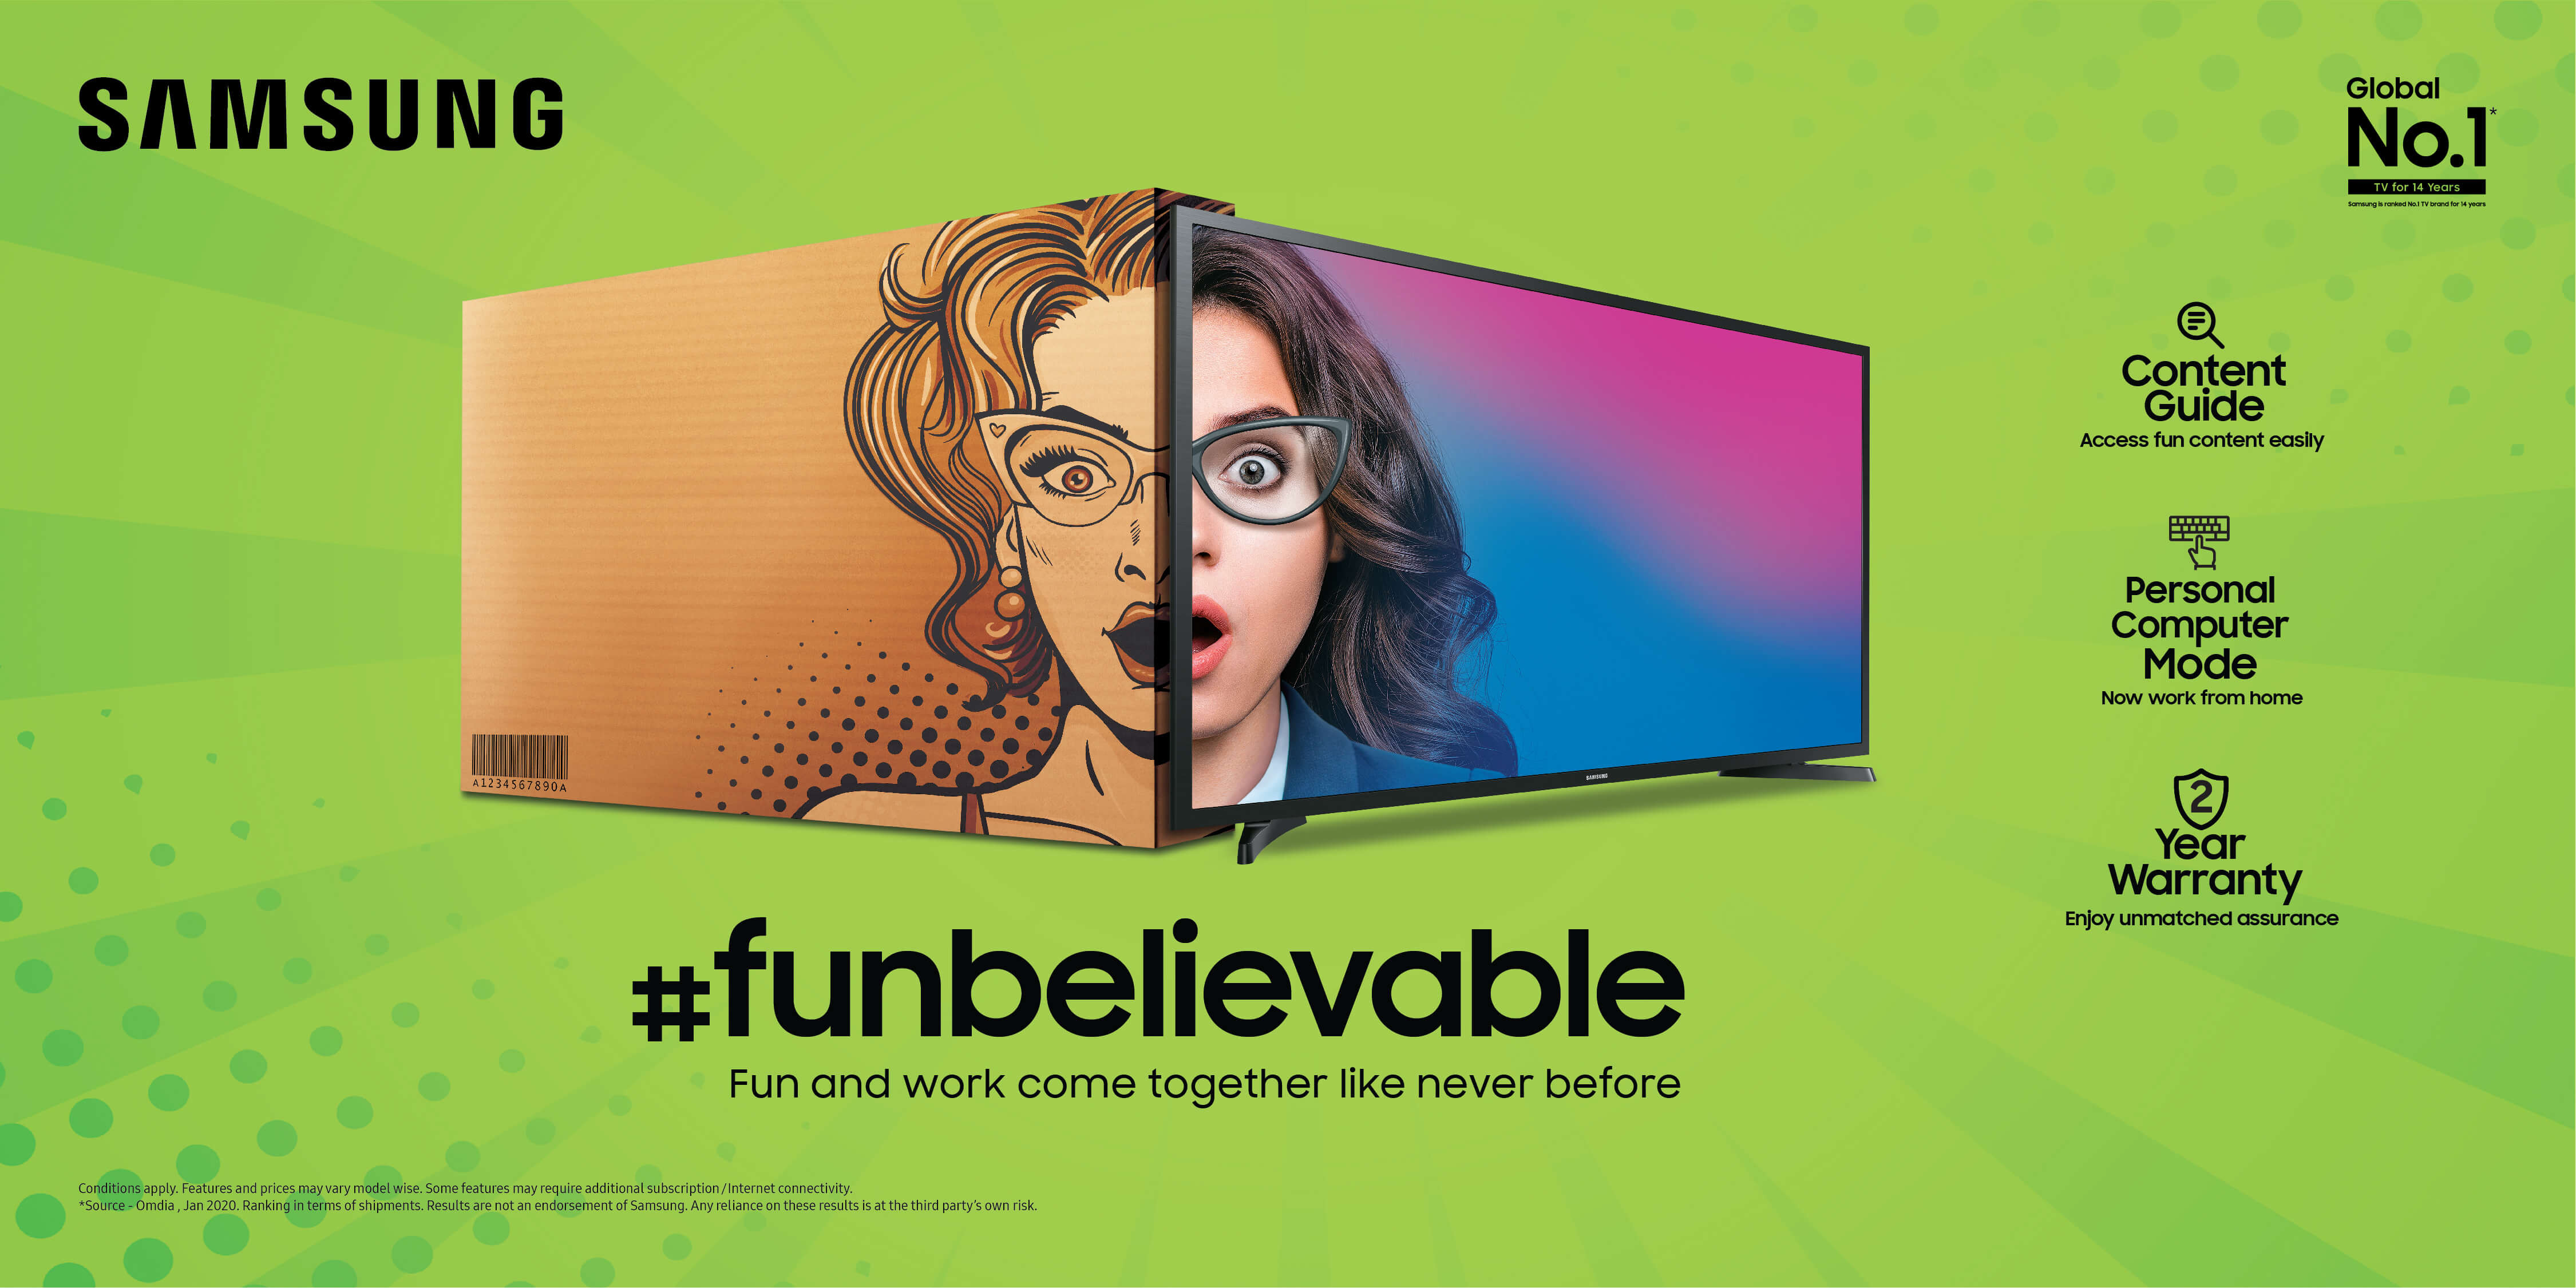 Samsung Launches #Funbelievable TV Series | So Cheap!